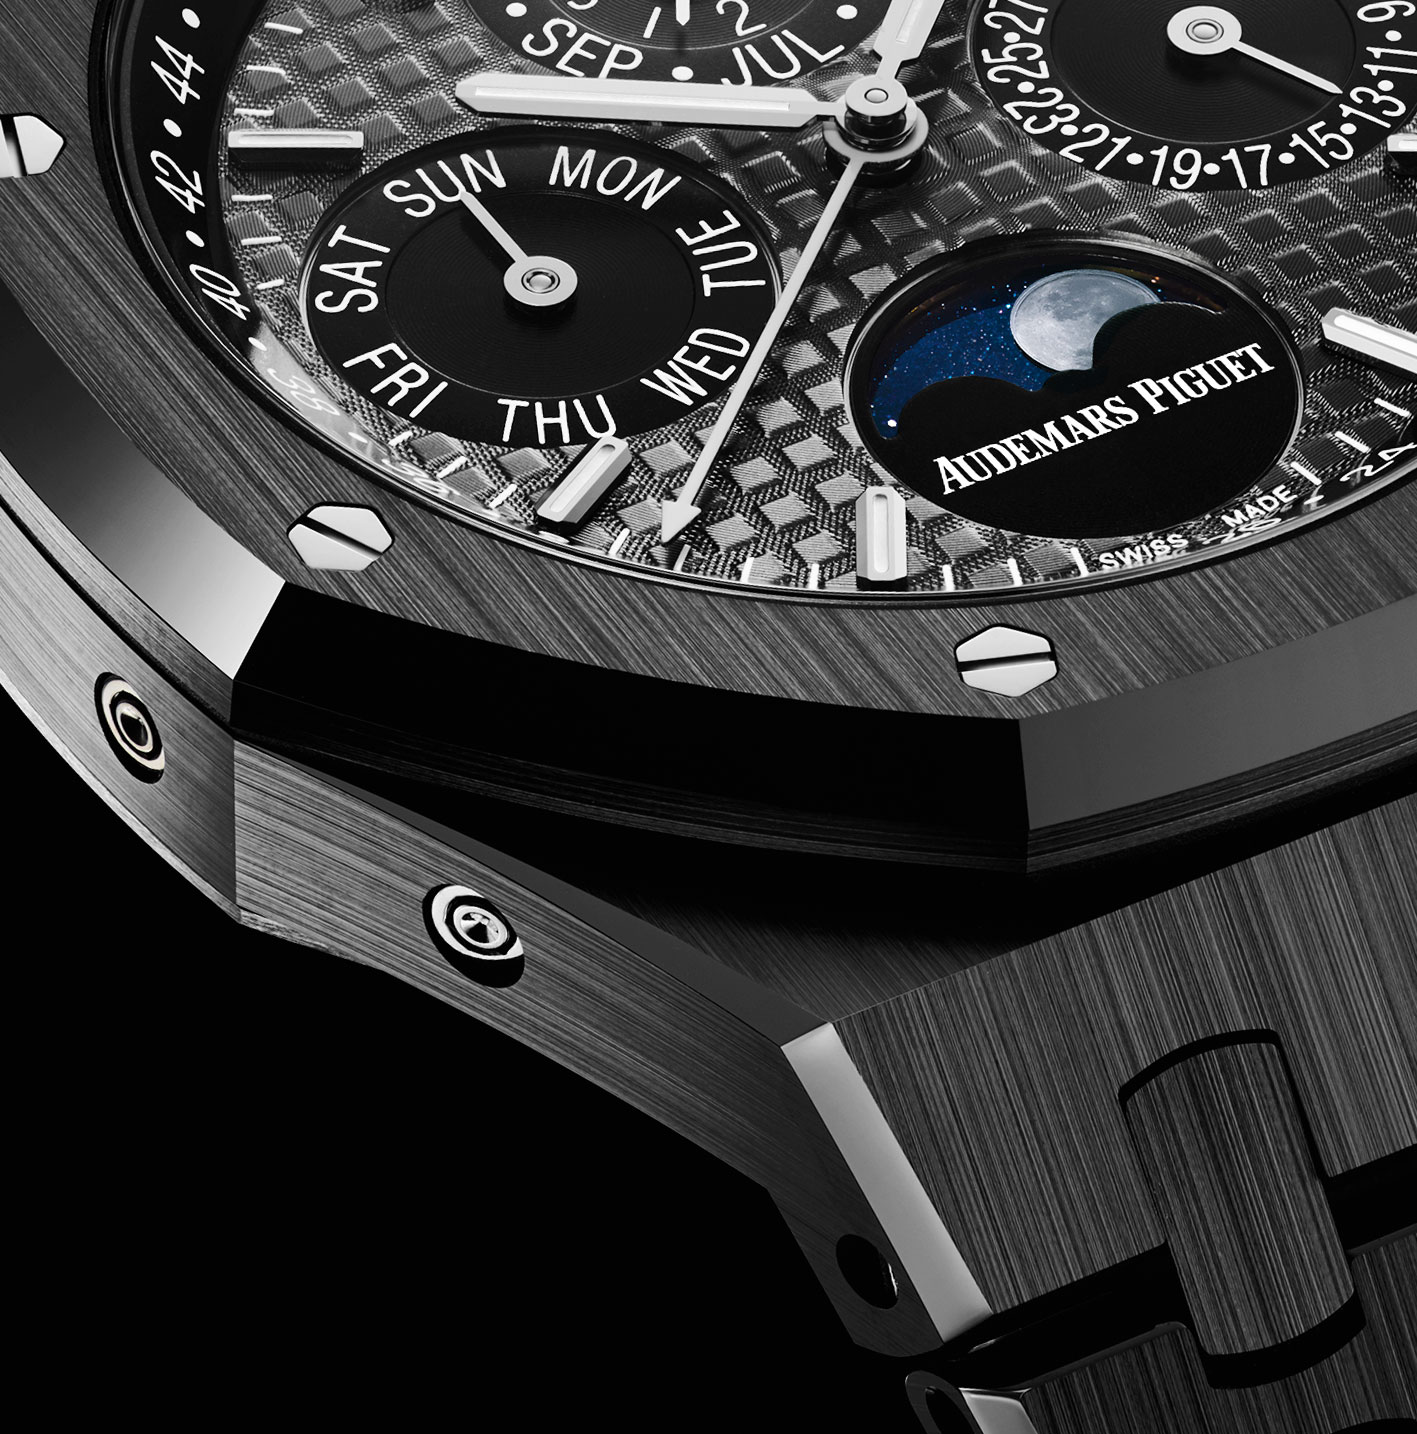 The Audemars Piguet Royal Oak Perpetual Calendar Black Ceramic is said to be unscratchable.